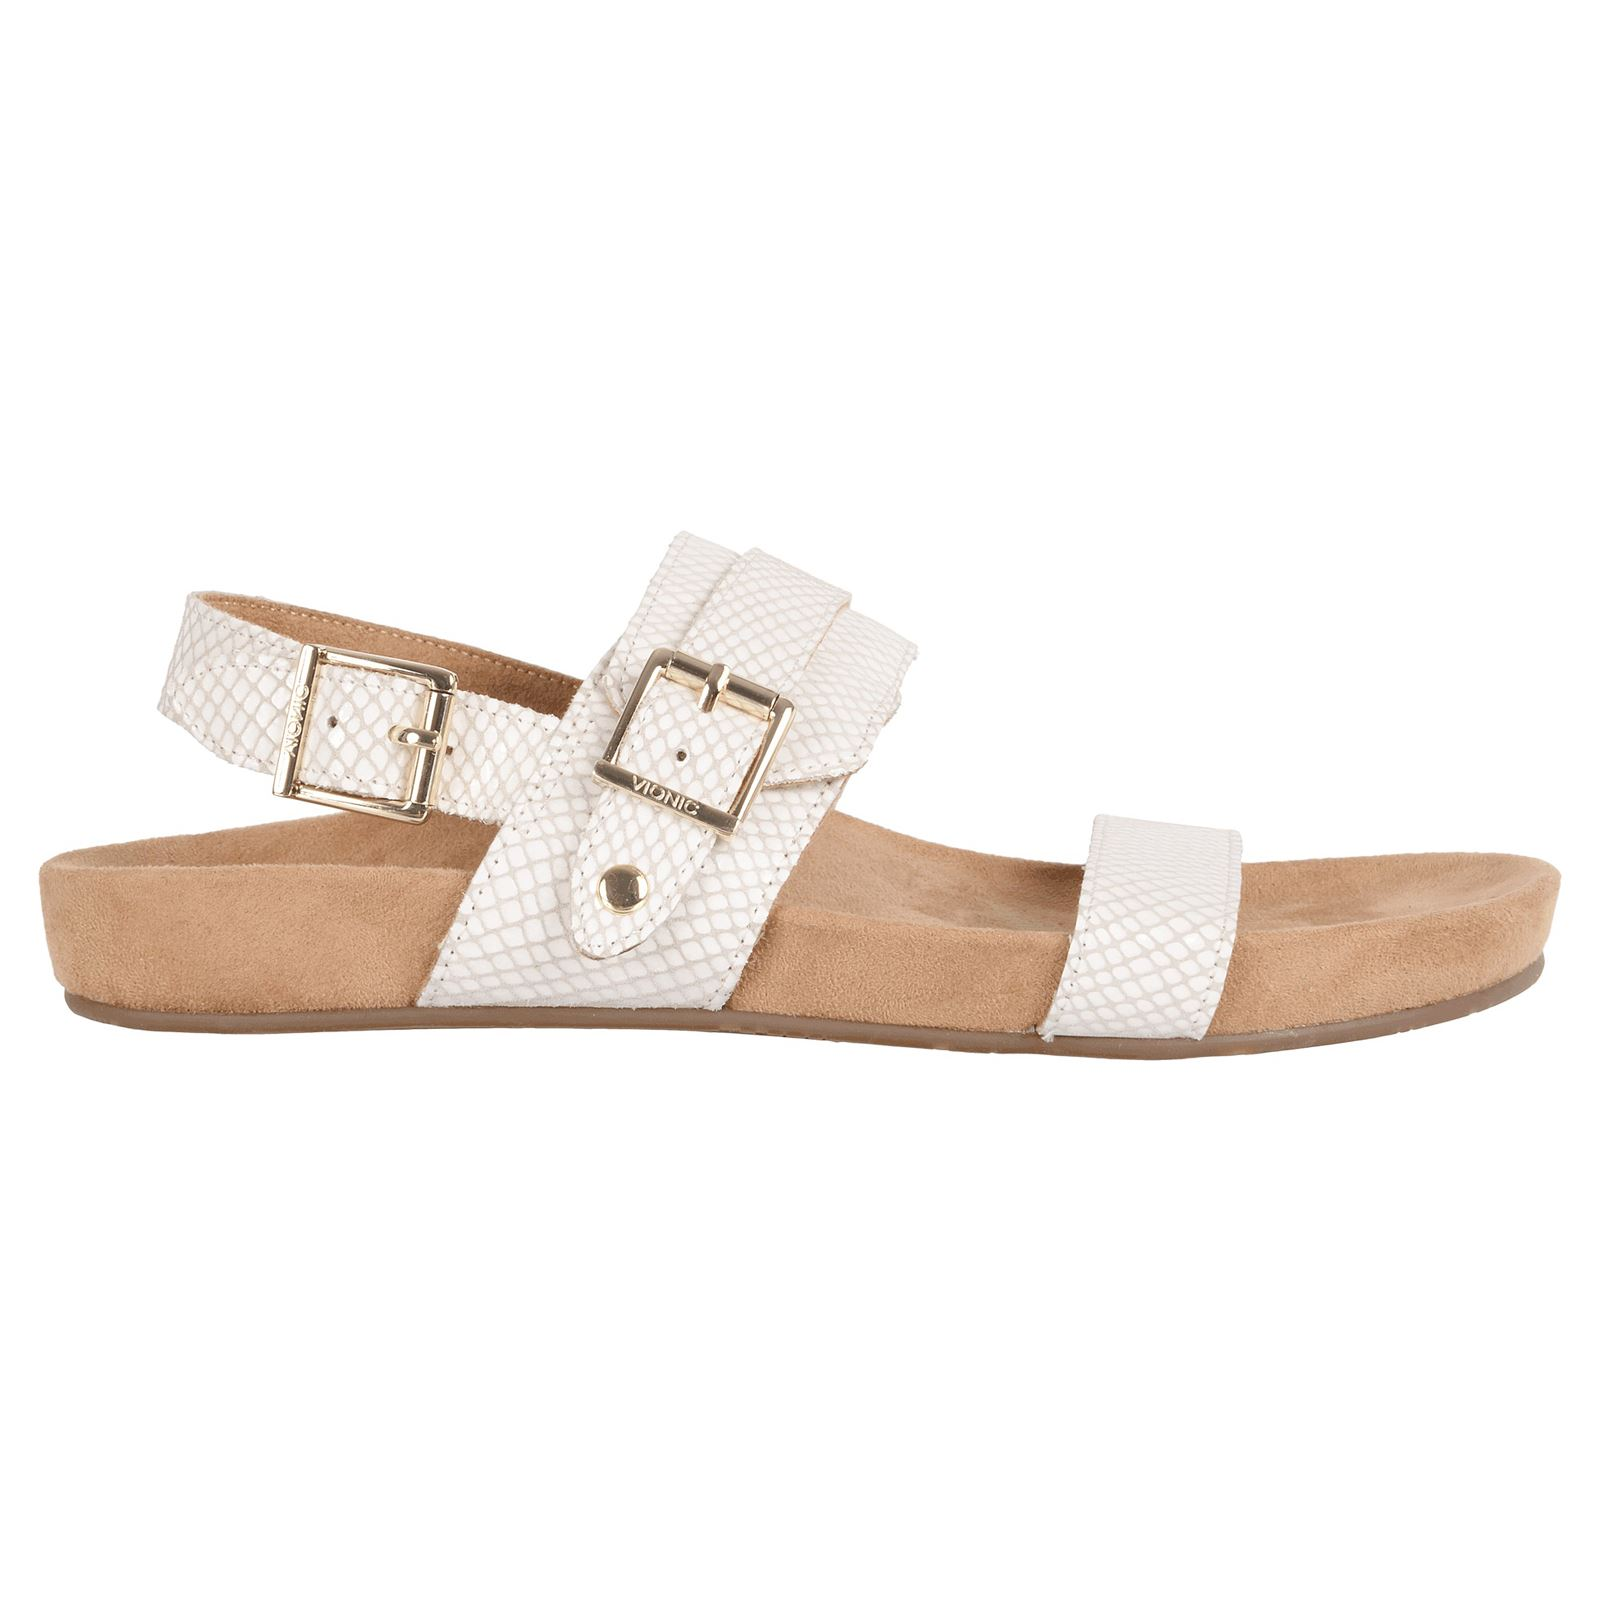 f15775b8b8e67 Description: Get summer ready with beautiful strappy style sandals from  Vionic.